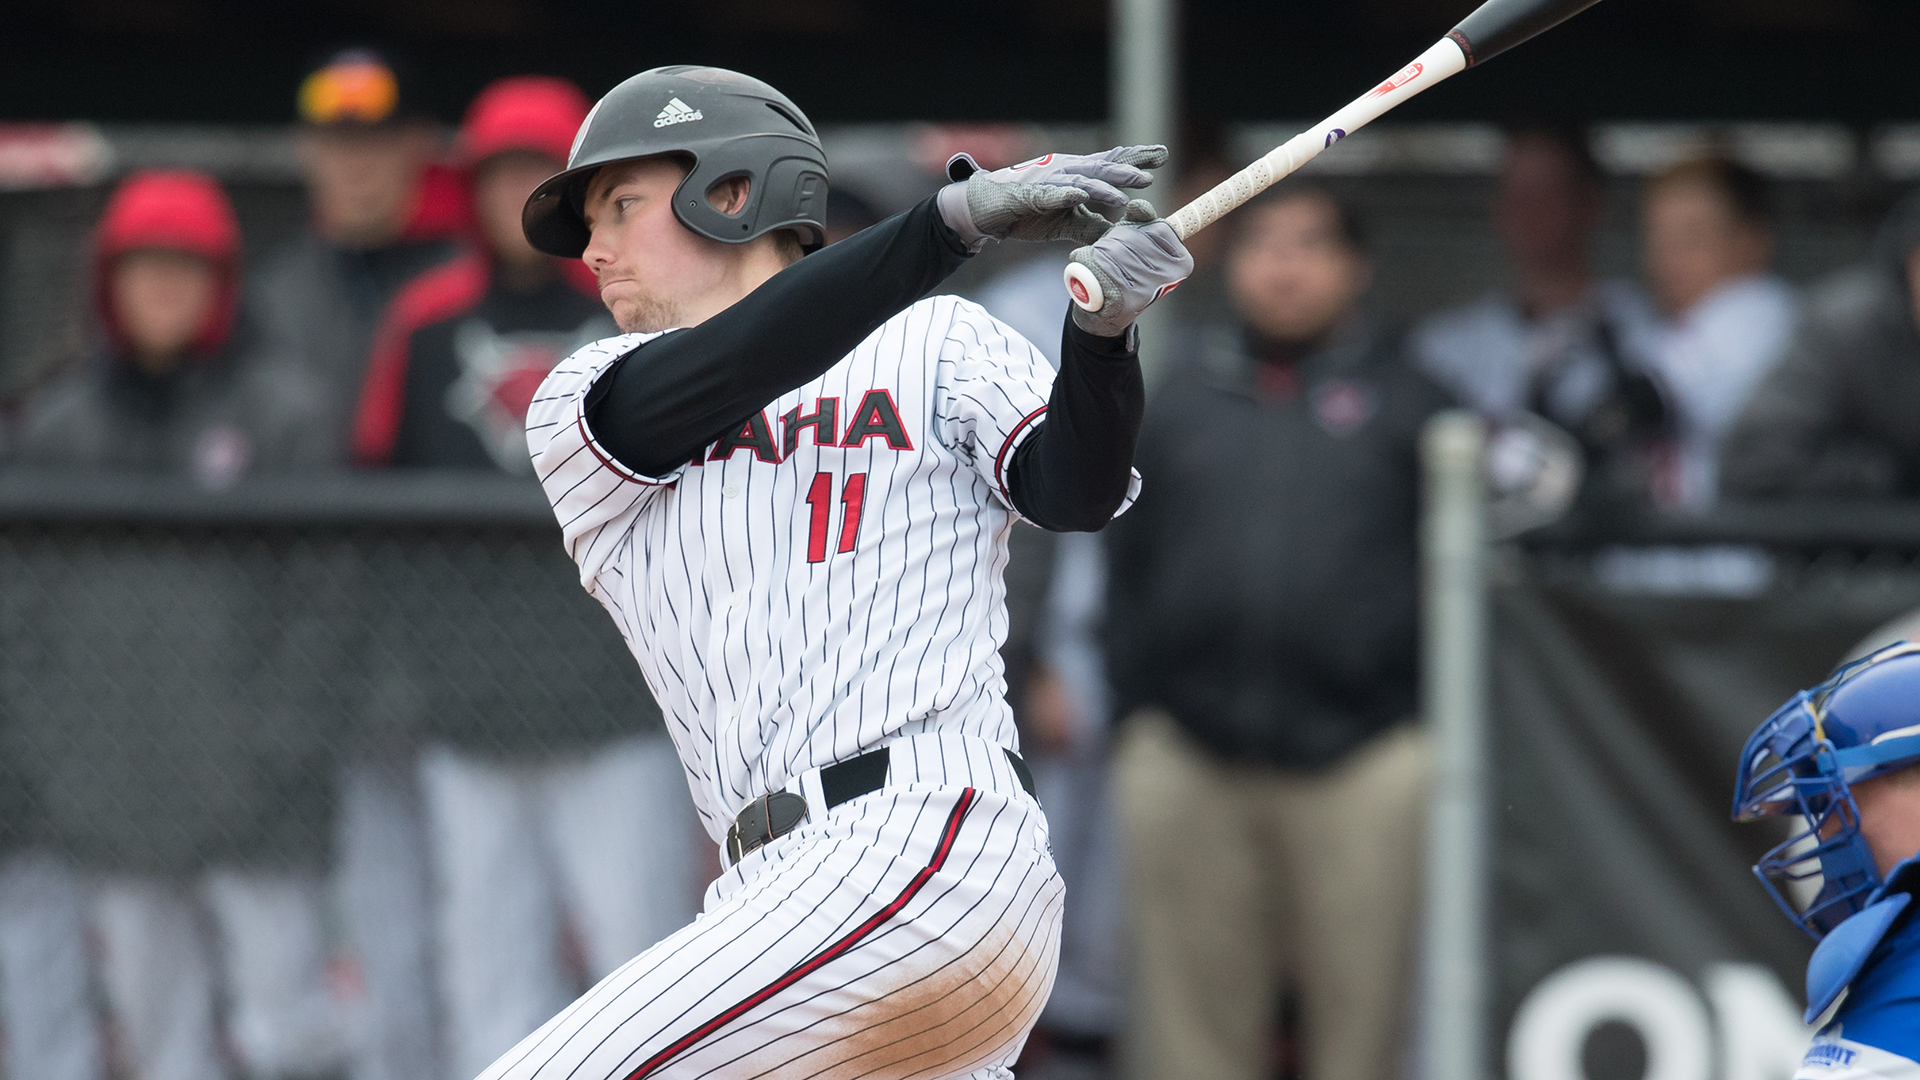 College players swinging the omaha